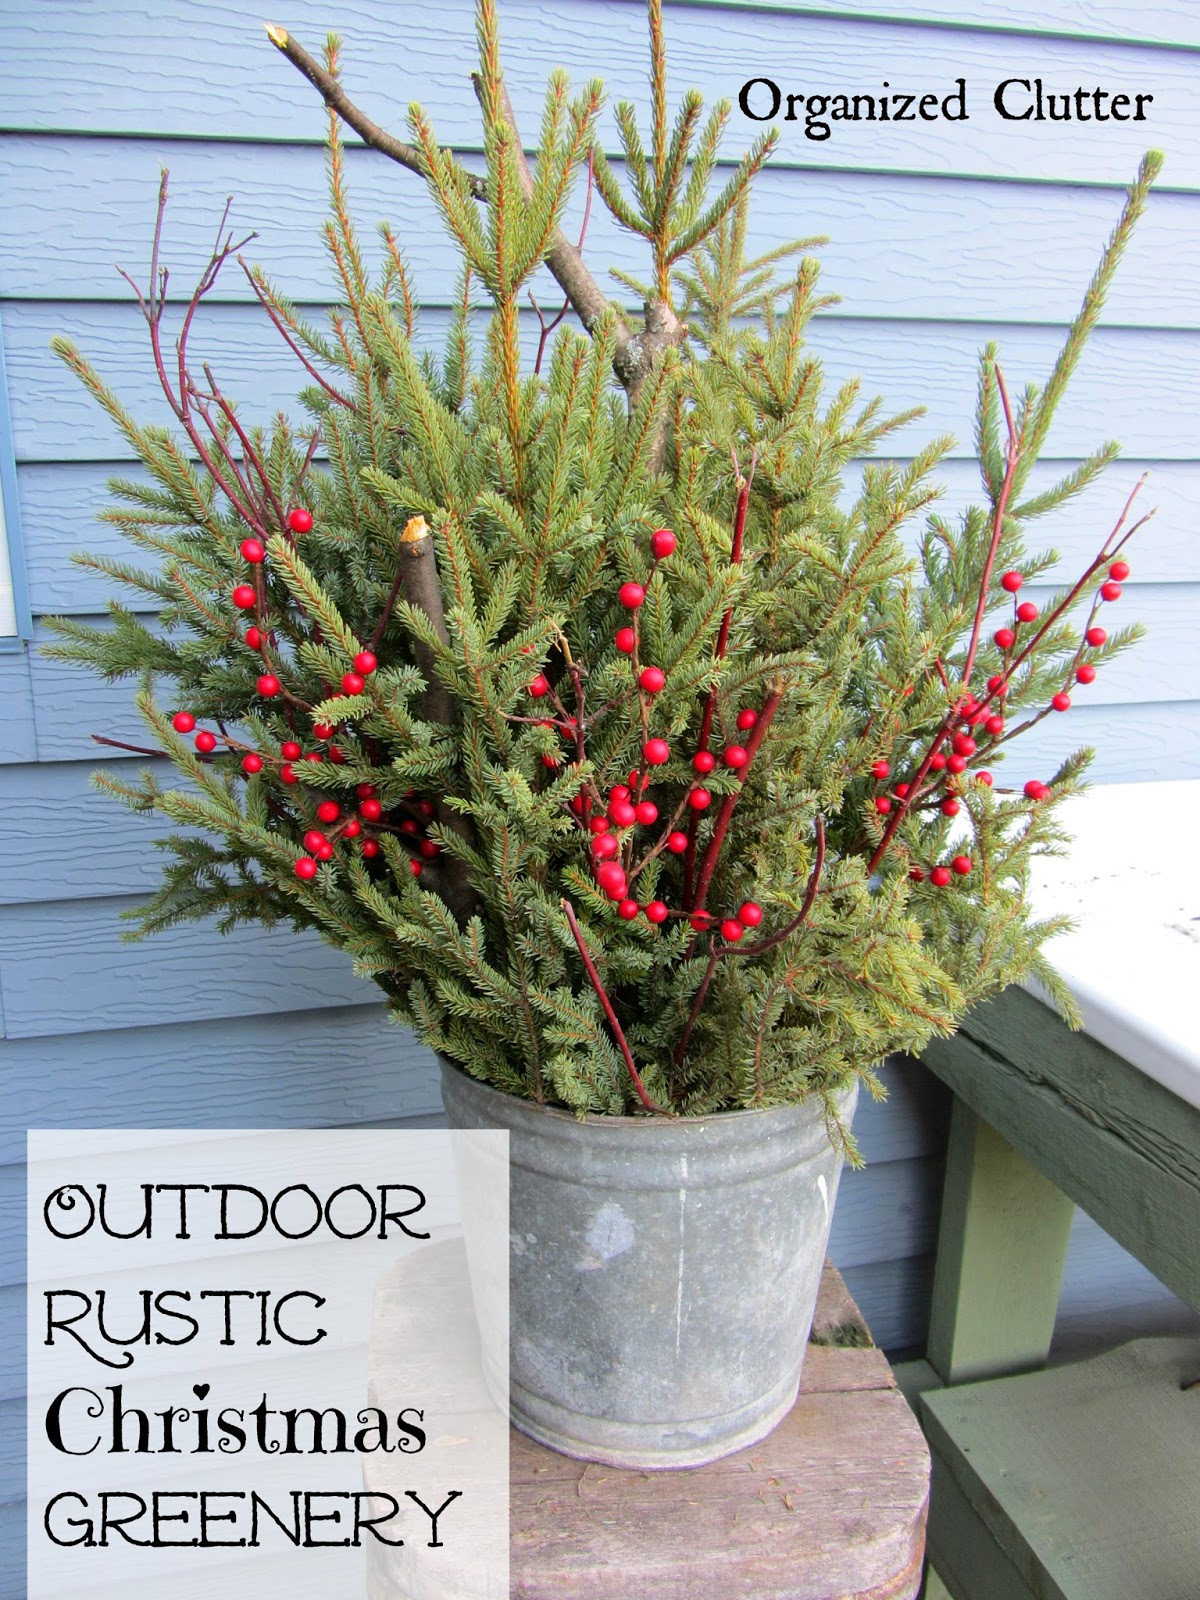 Rustic christmas outdoor greenery pails organized clutter for Christmas tin pails